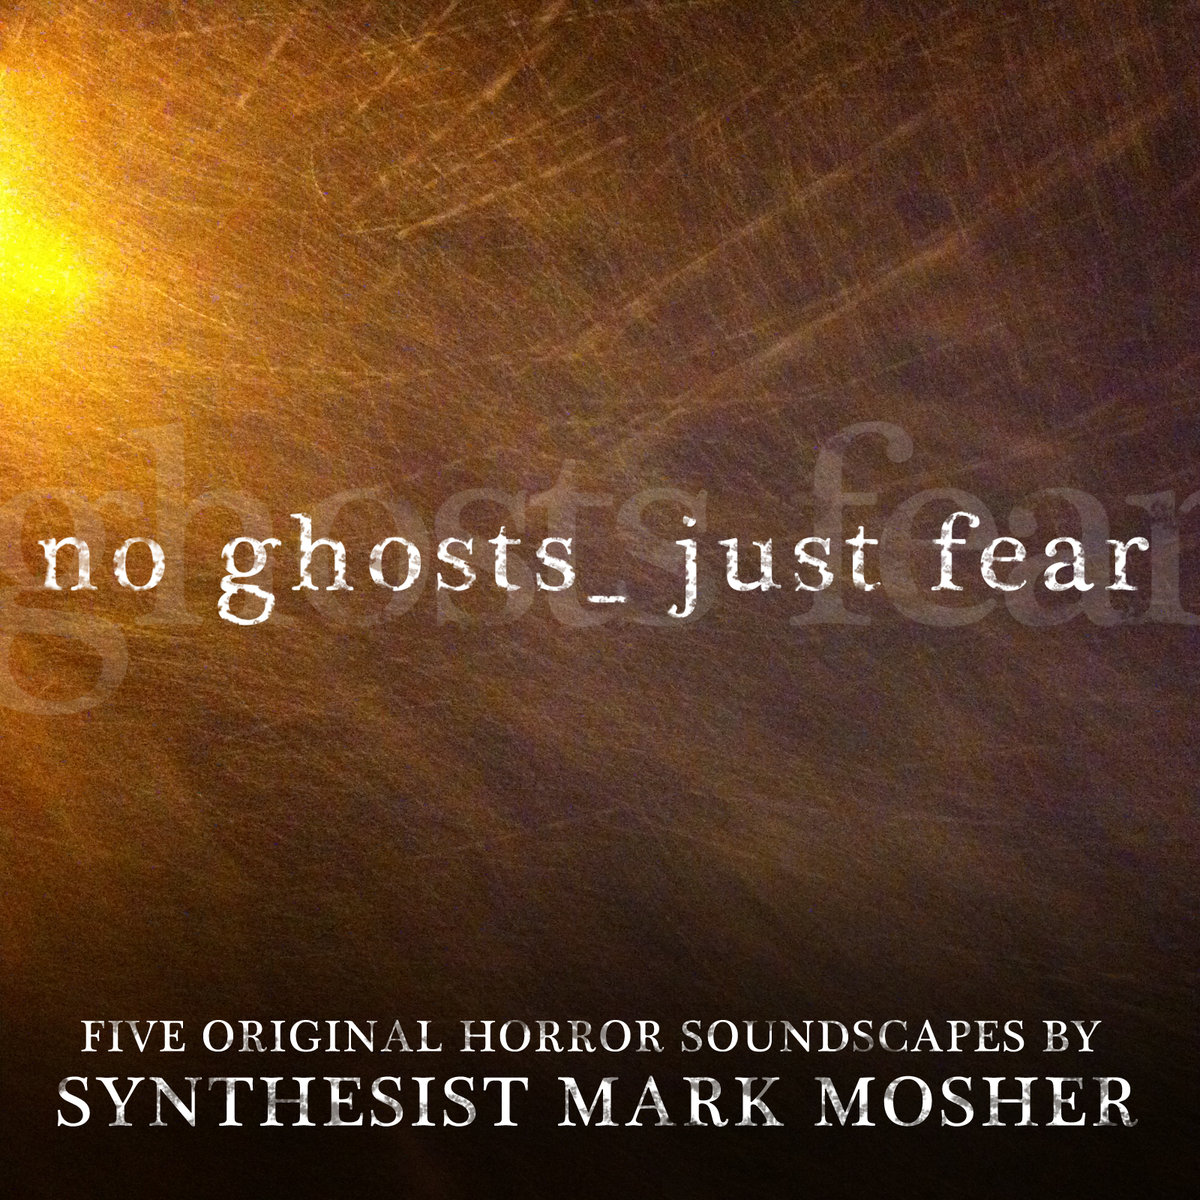 """No Ghosts. Just Fear."""" Halloween Horror Soundscape Album Now ..."""